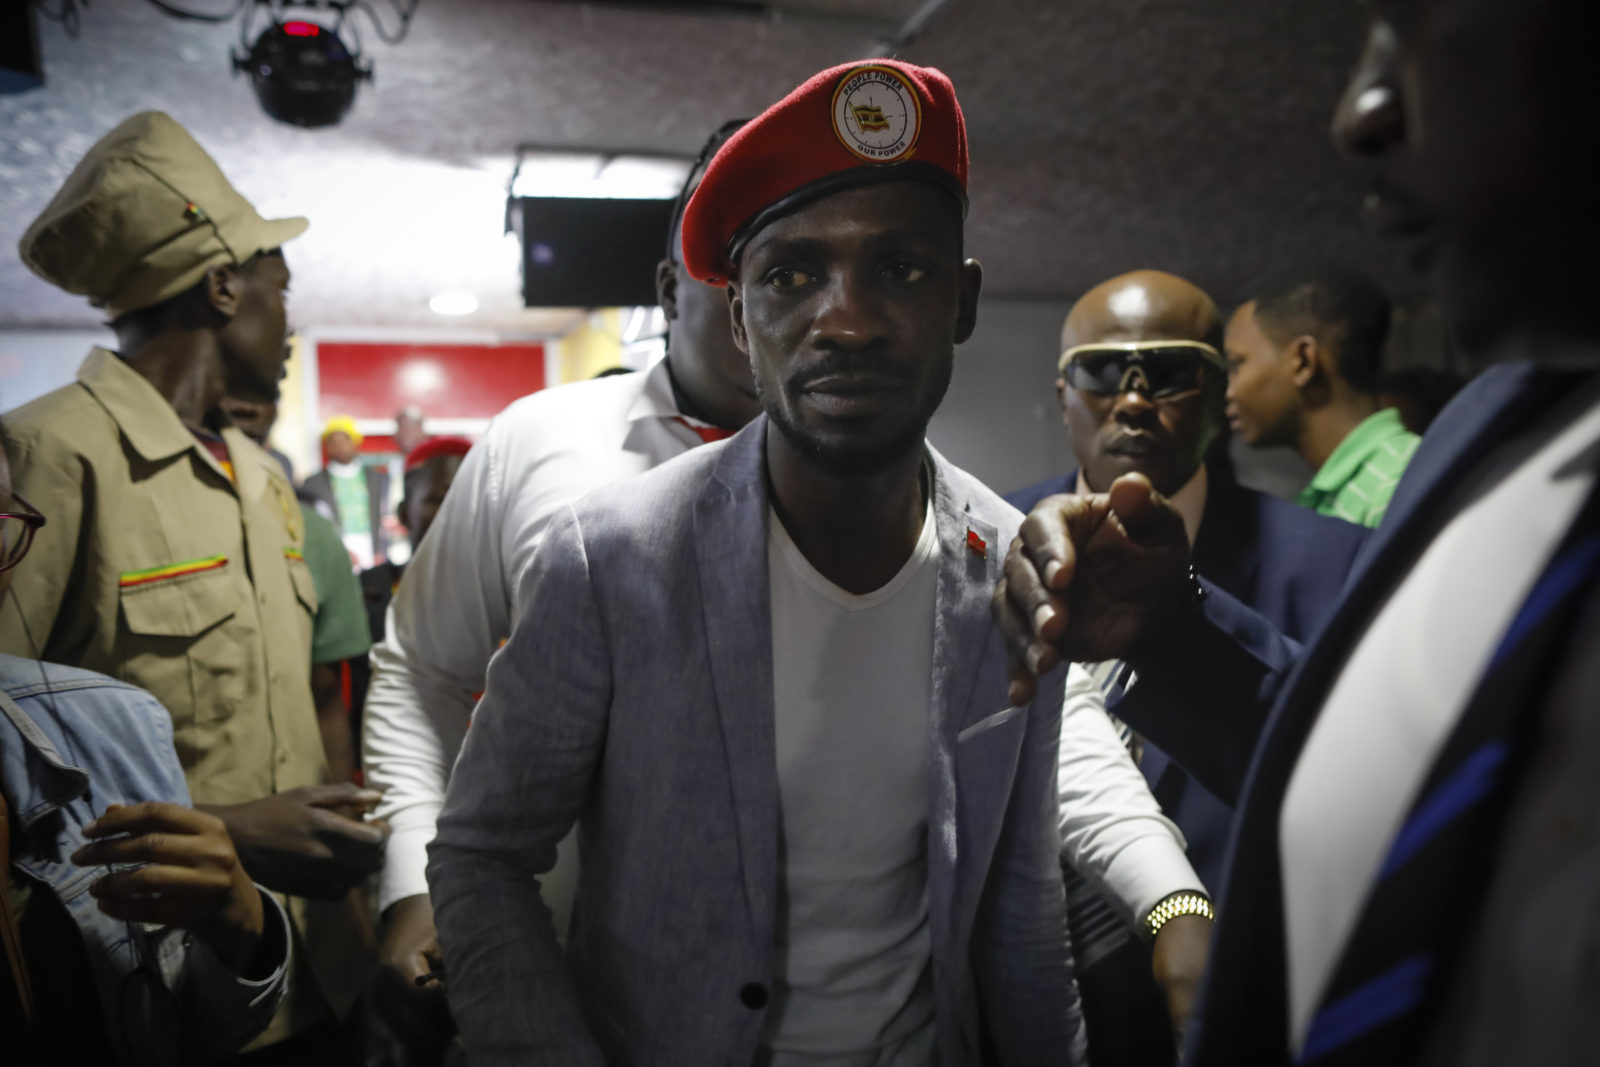 Police arrests Bobi Wine after nomination